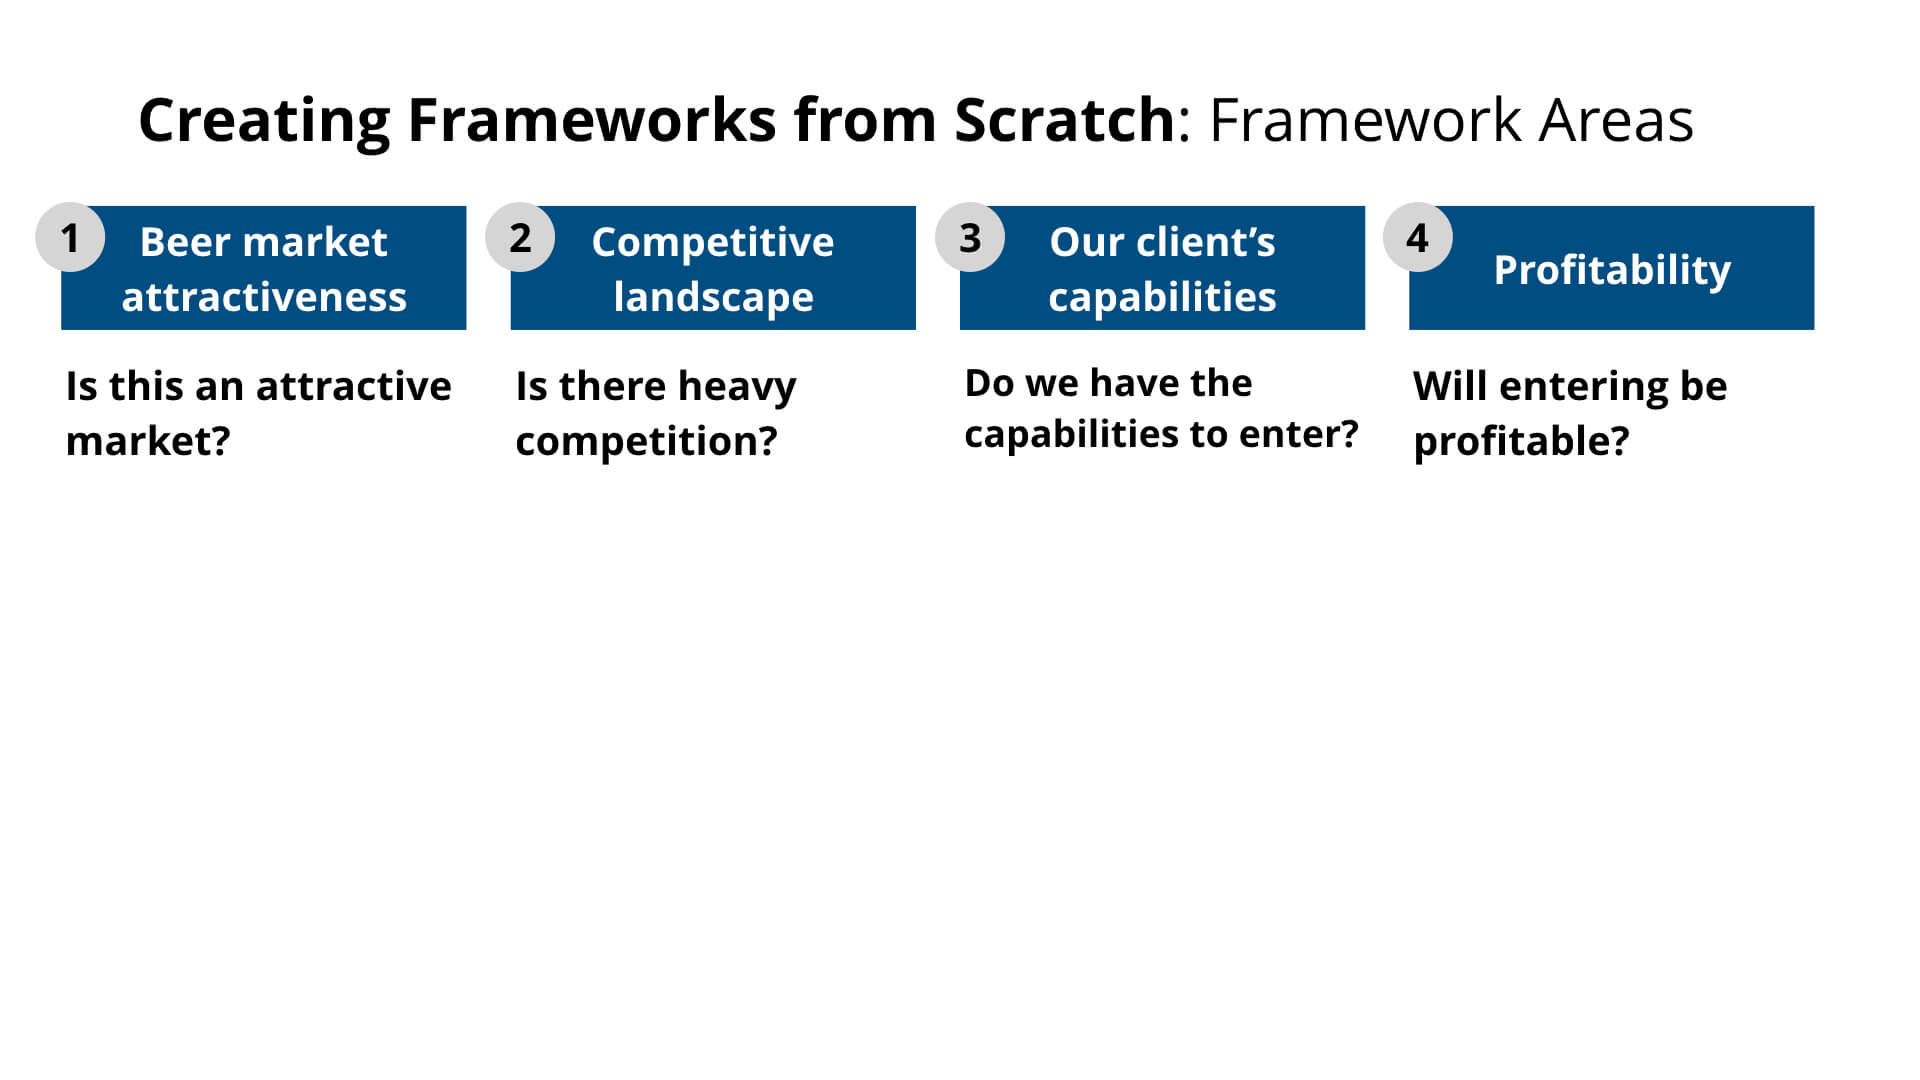 Creating Frameworks from Scratch: Framework Areas